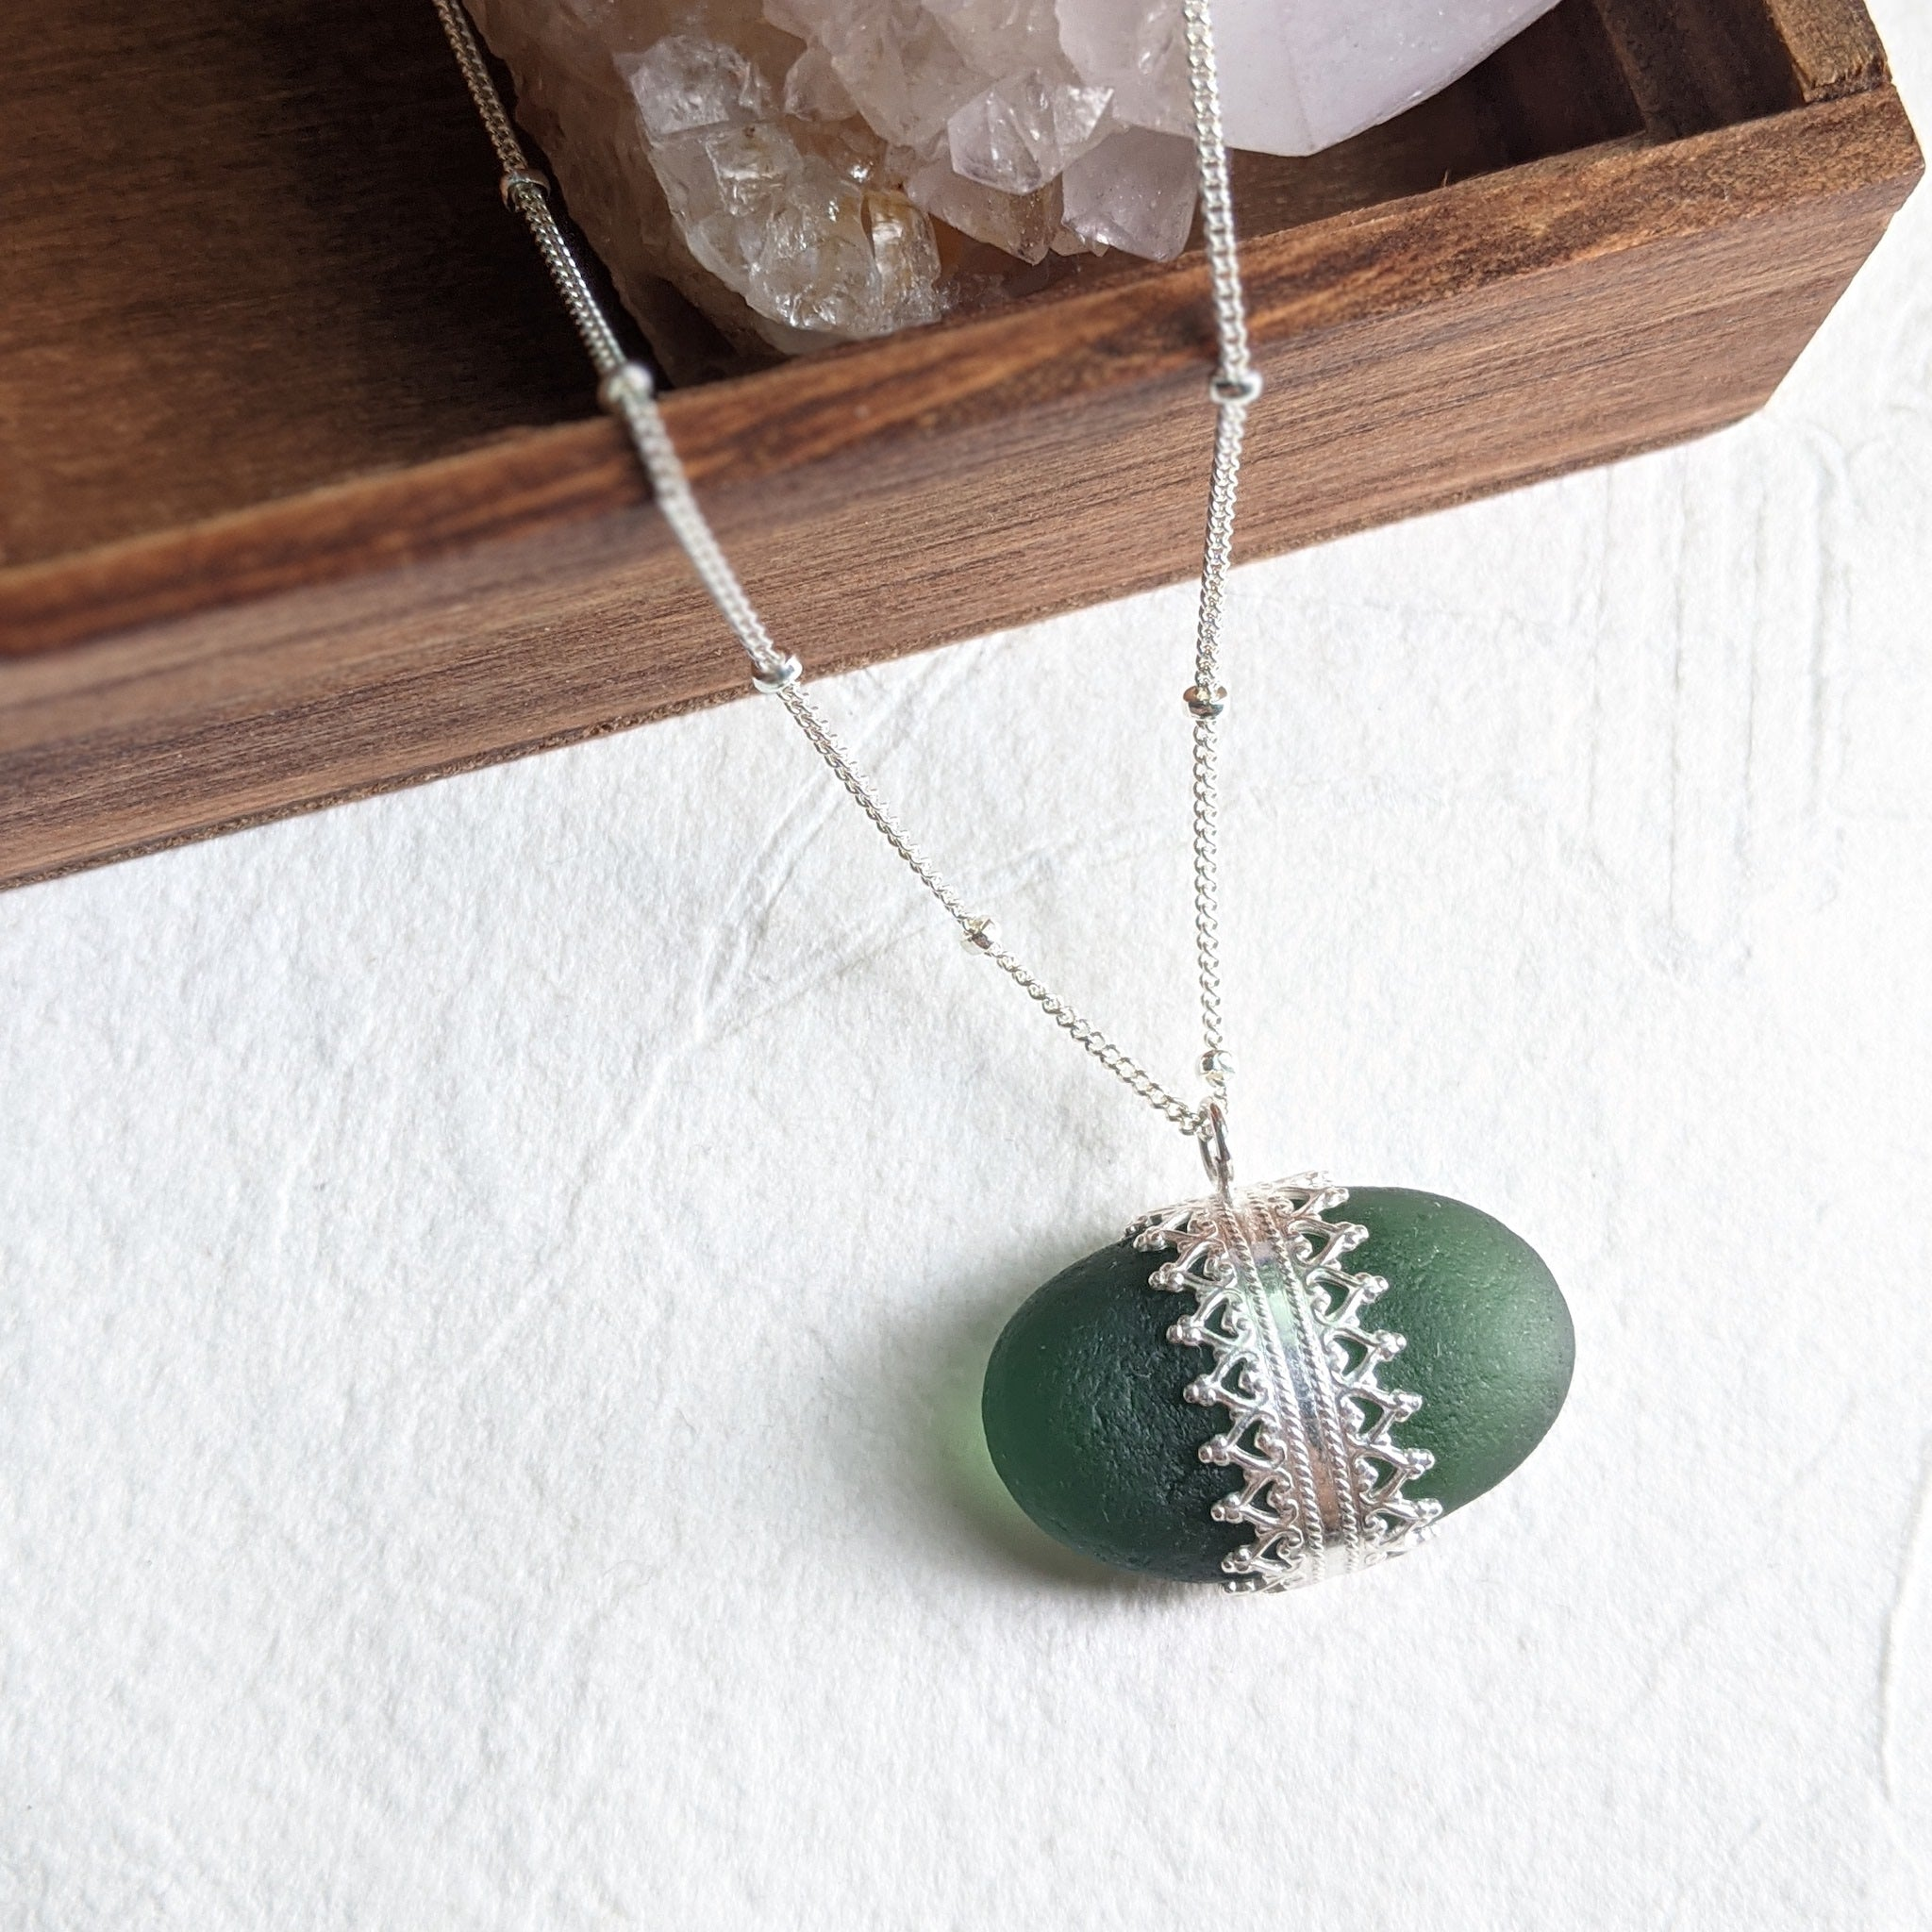 """Gwen"" Sea glass pendant with lace-patterned setting"